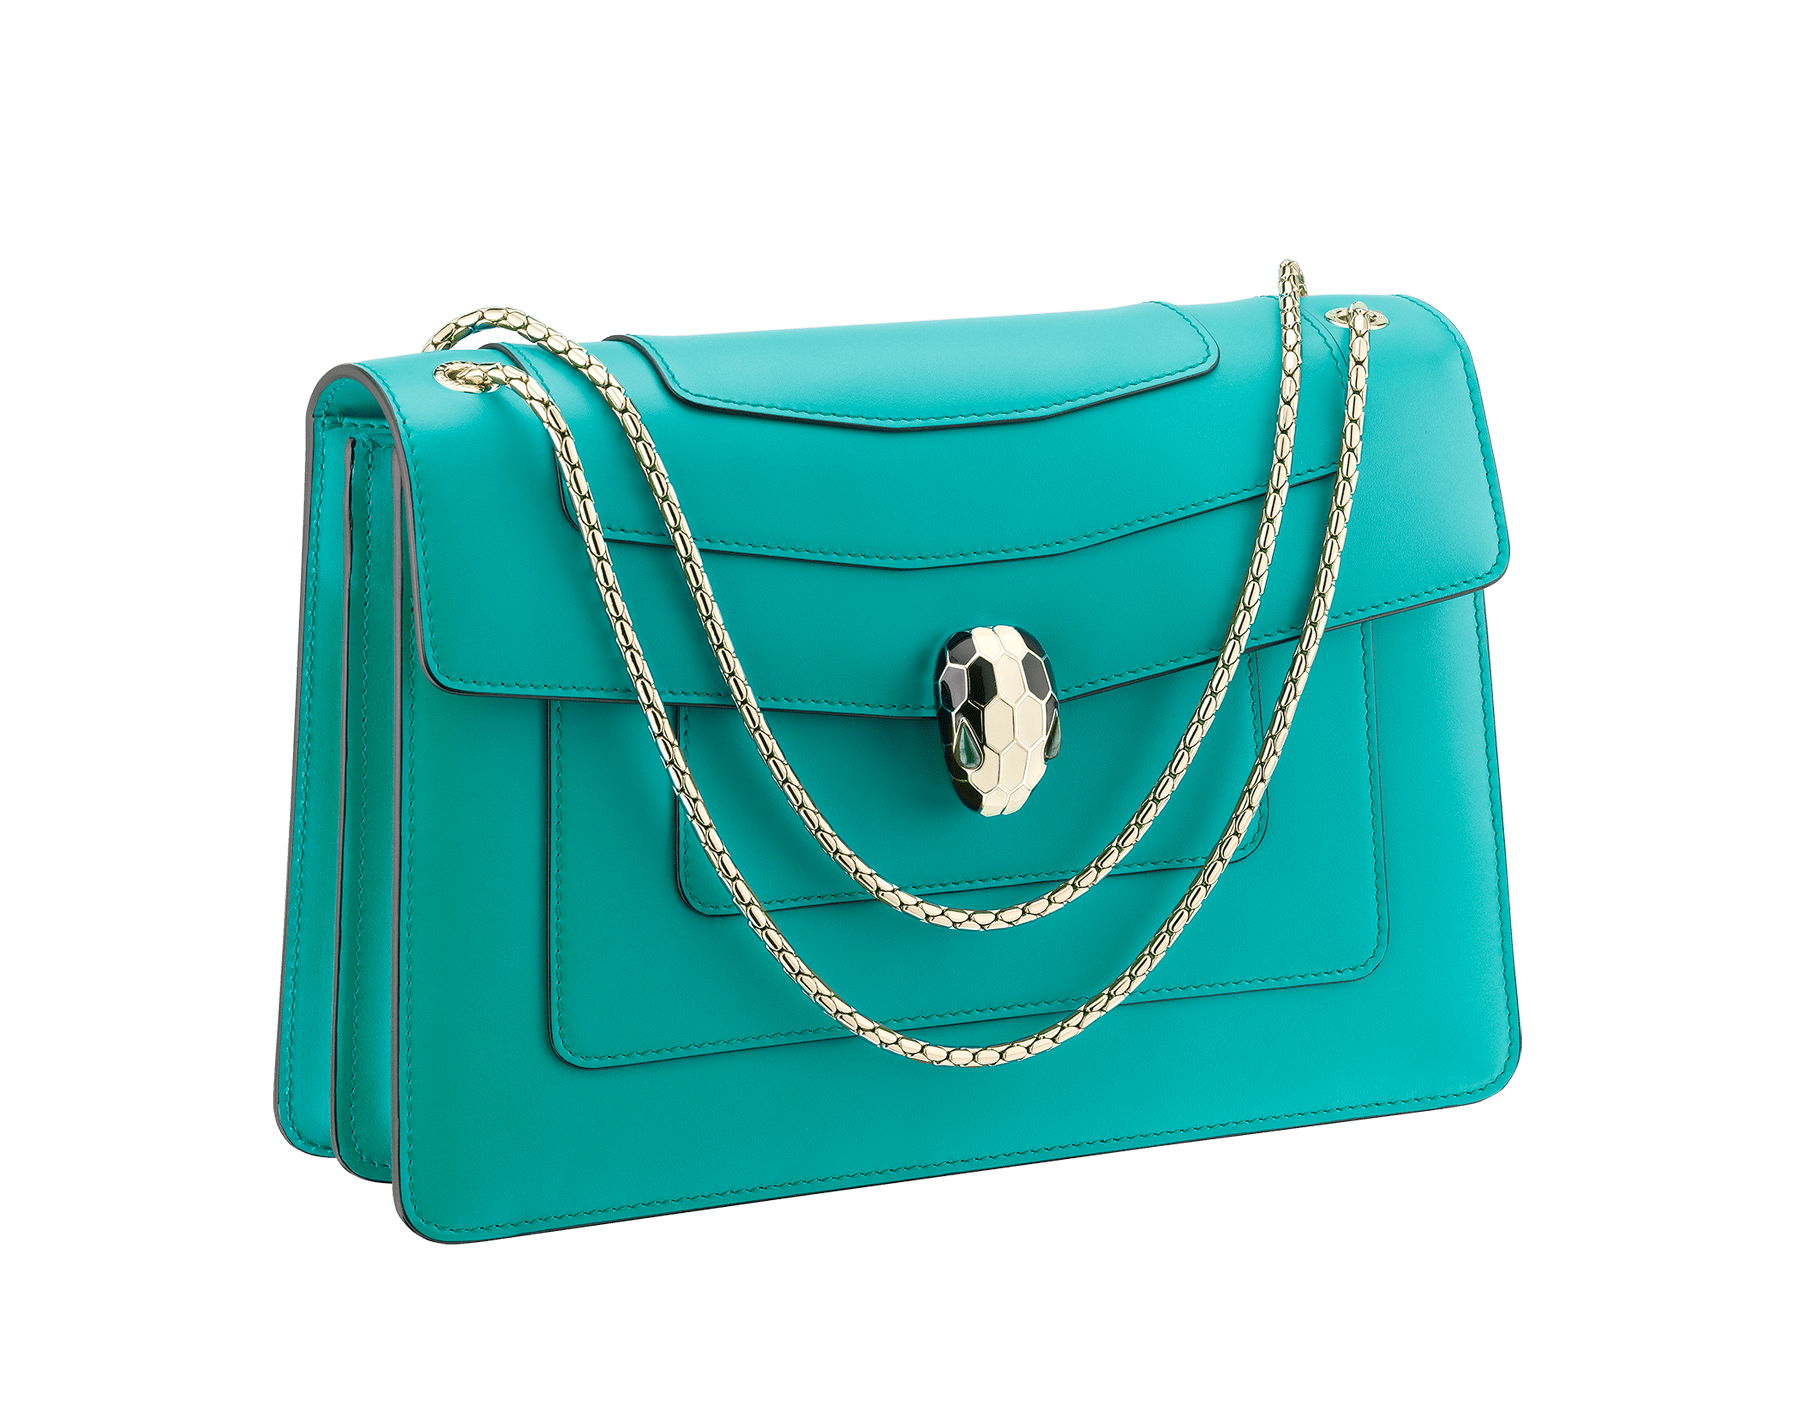 Serpenti Forever shoulder bag in tropical turquoise smooth calf leather. Snakehead closure in light gold plated brass decorated with black and white enamel, and green malachite eyes. 287931 image 2